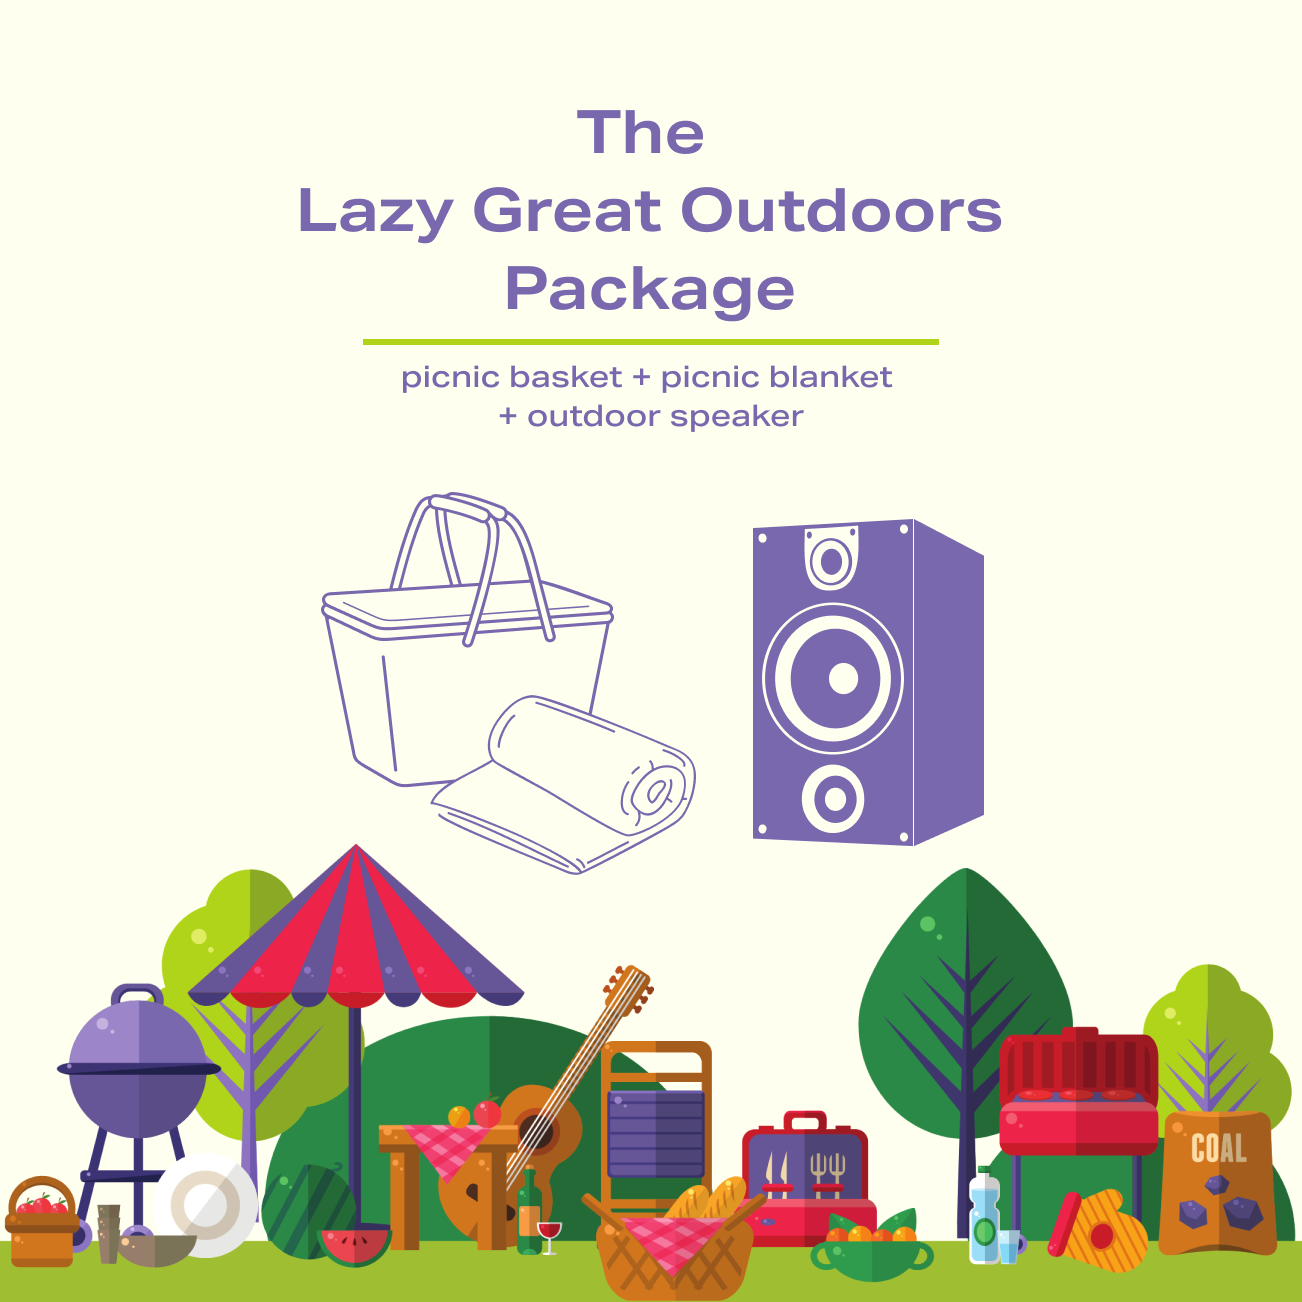 The Lazy Great Outdoors Package - picnic basket, picnic blanket, and outdoor speaker